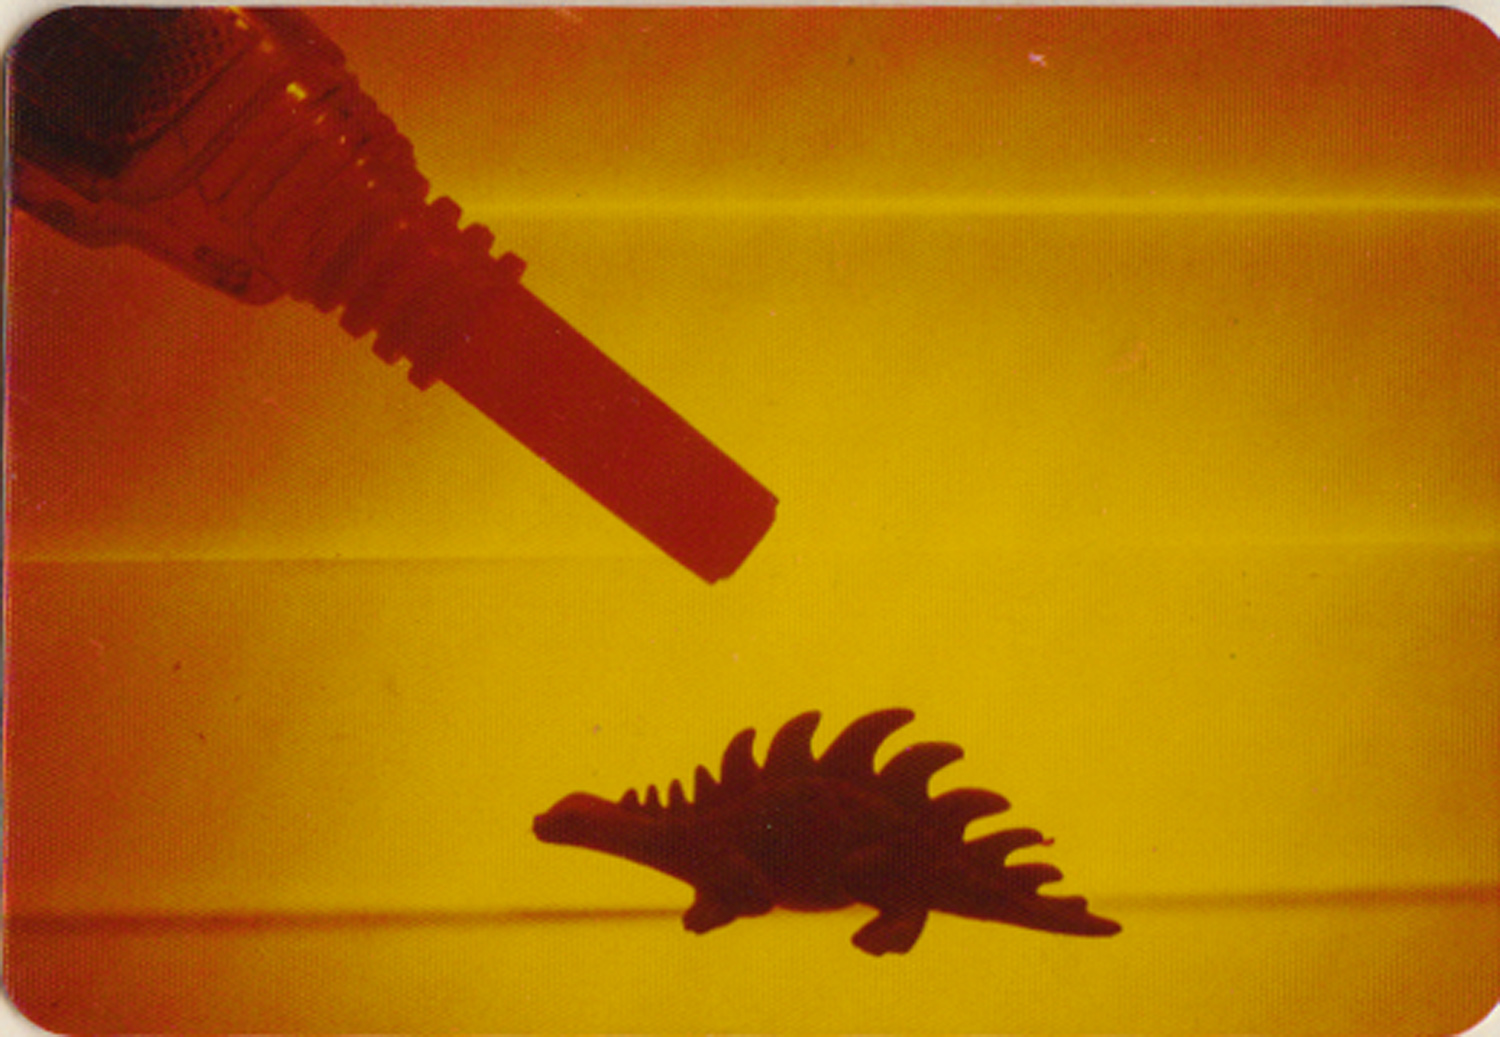 Pat Place, Still Life with Ray Gun & Dinosaur, photograph, 1978